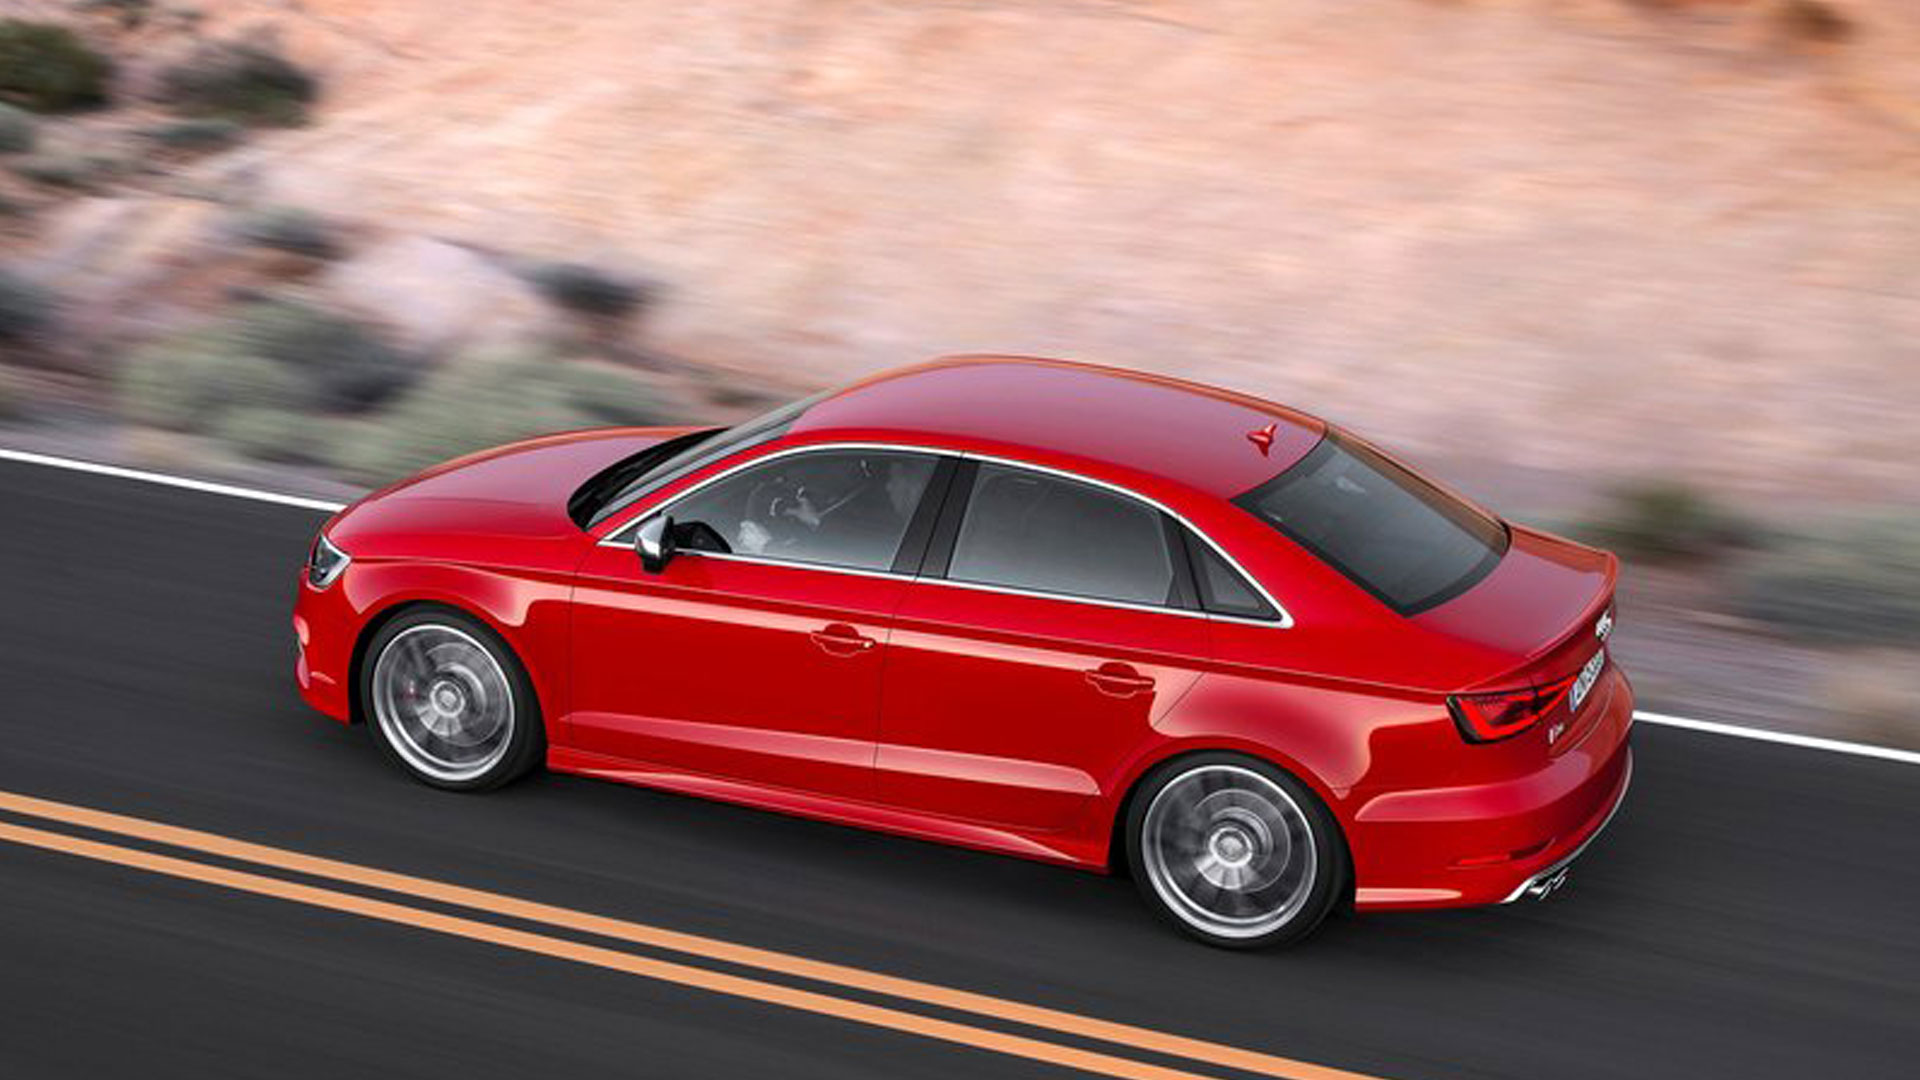 New Audi S3 Sedan 2015 image HD Wallpaper